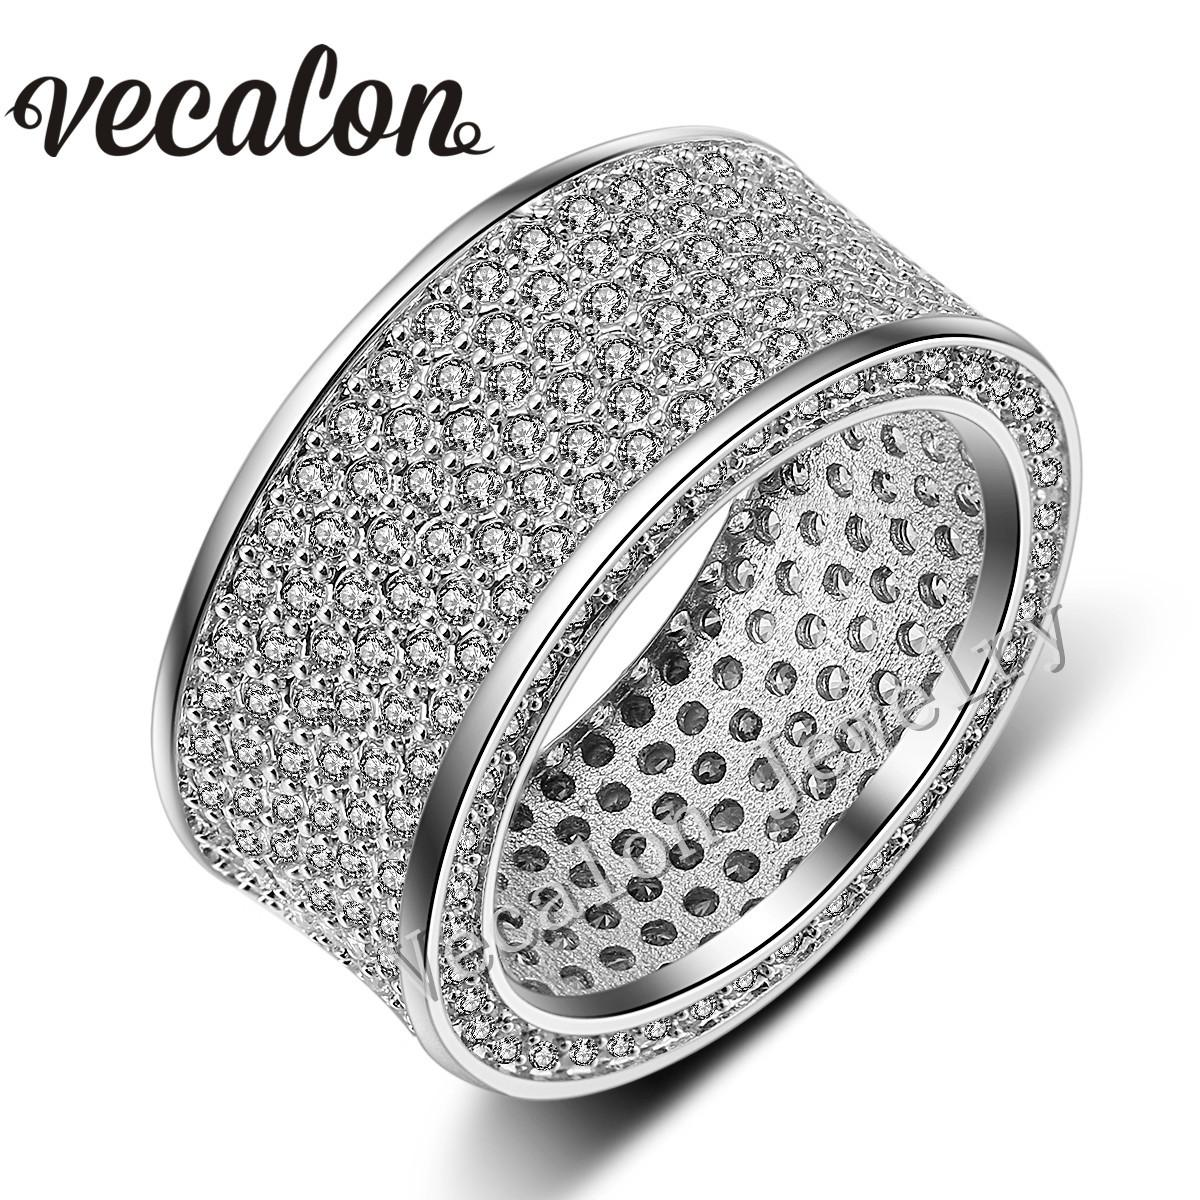 Vecalon Full 320Pcs Simulated diamond Cz Wedding Band Ring for Women 10KT White Gold Filled Female Engagement Band Sz 5-11